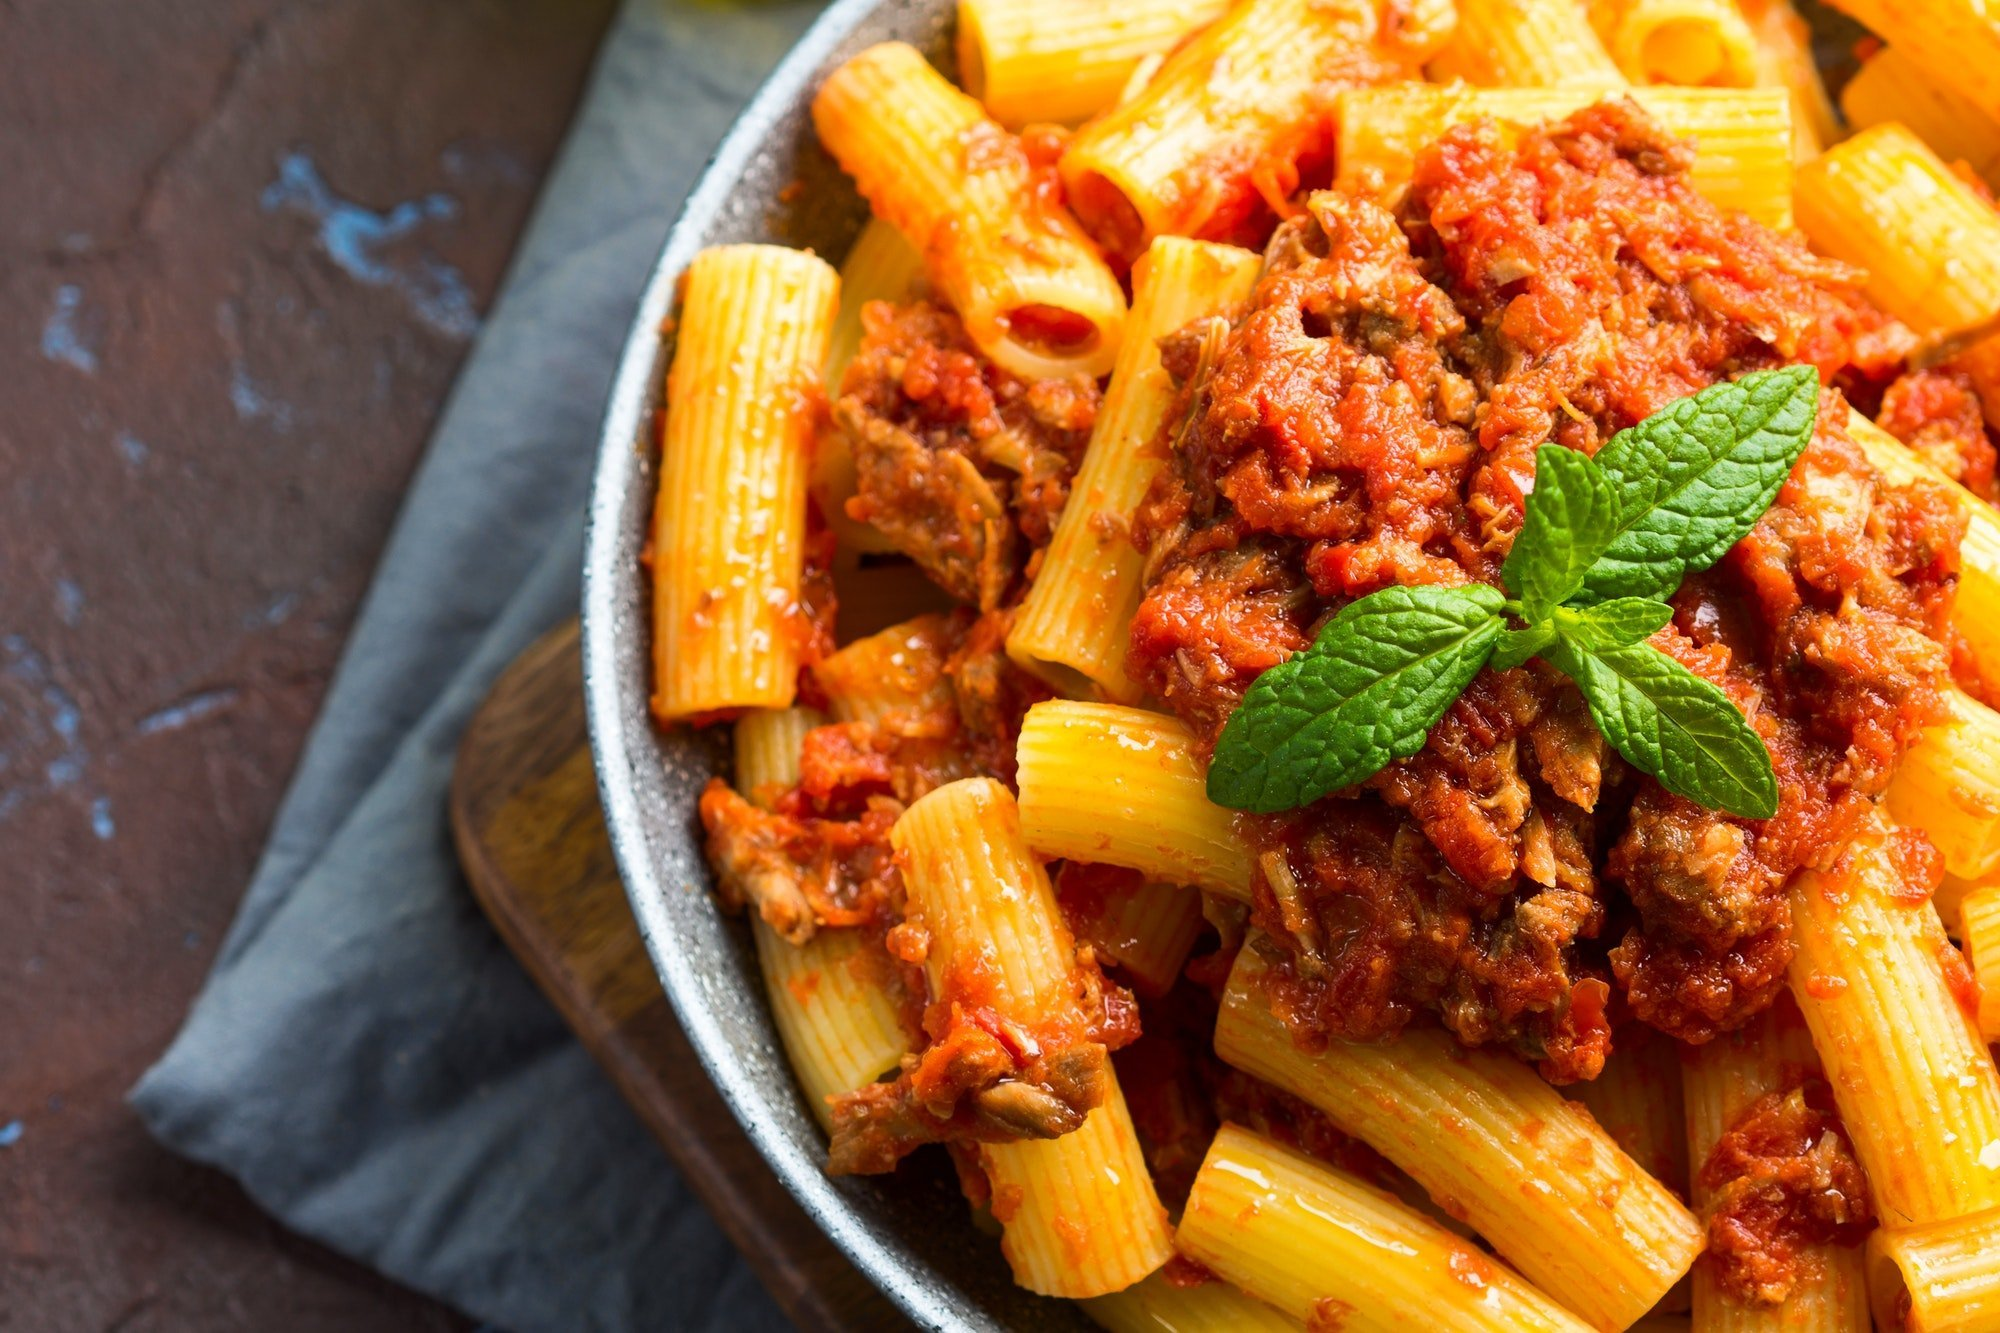 Delicious rigatoni pasta with italian tomato meat ragu sauce served in a pan on dark brown